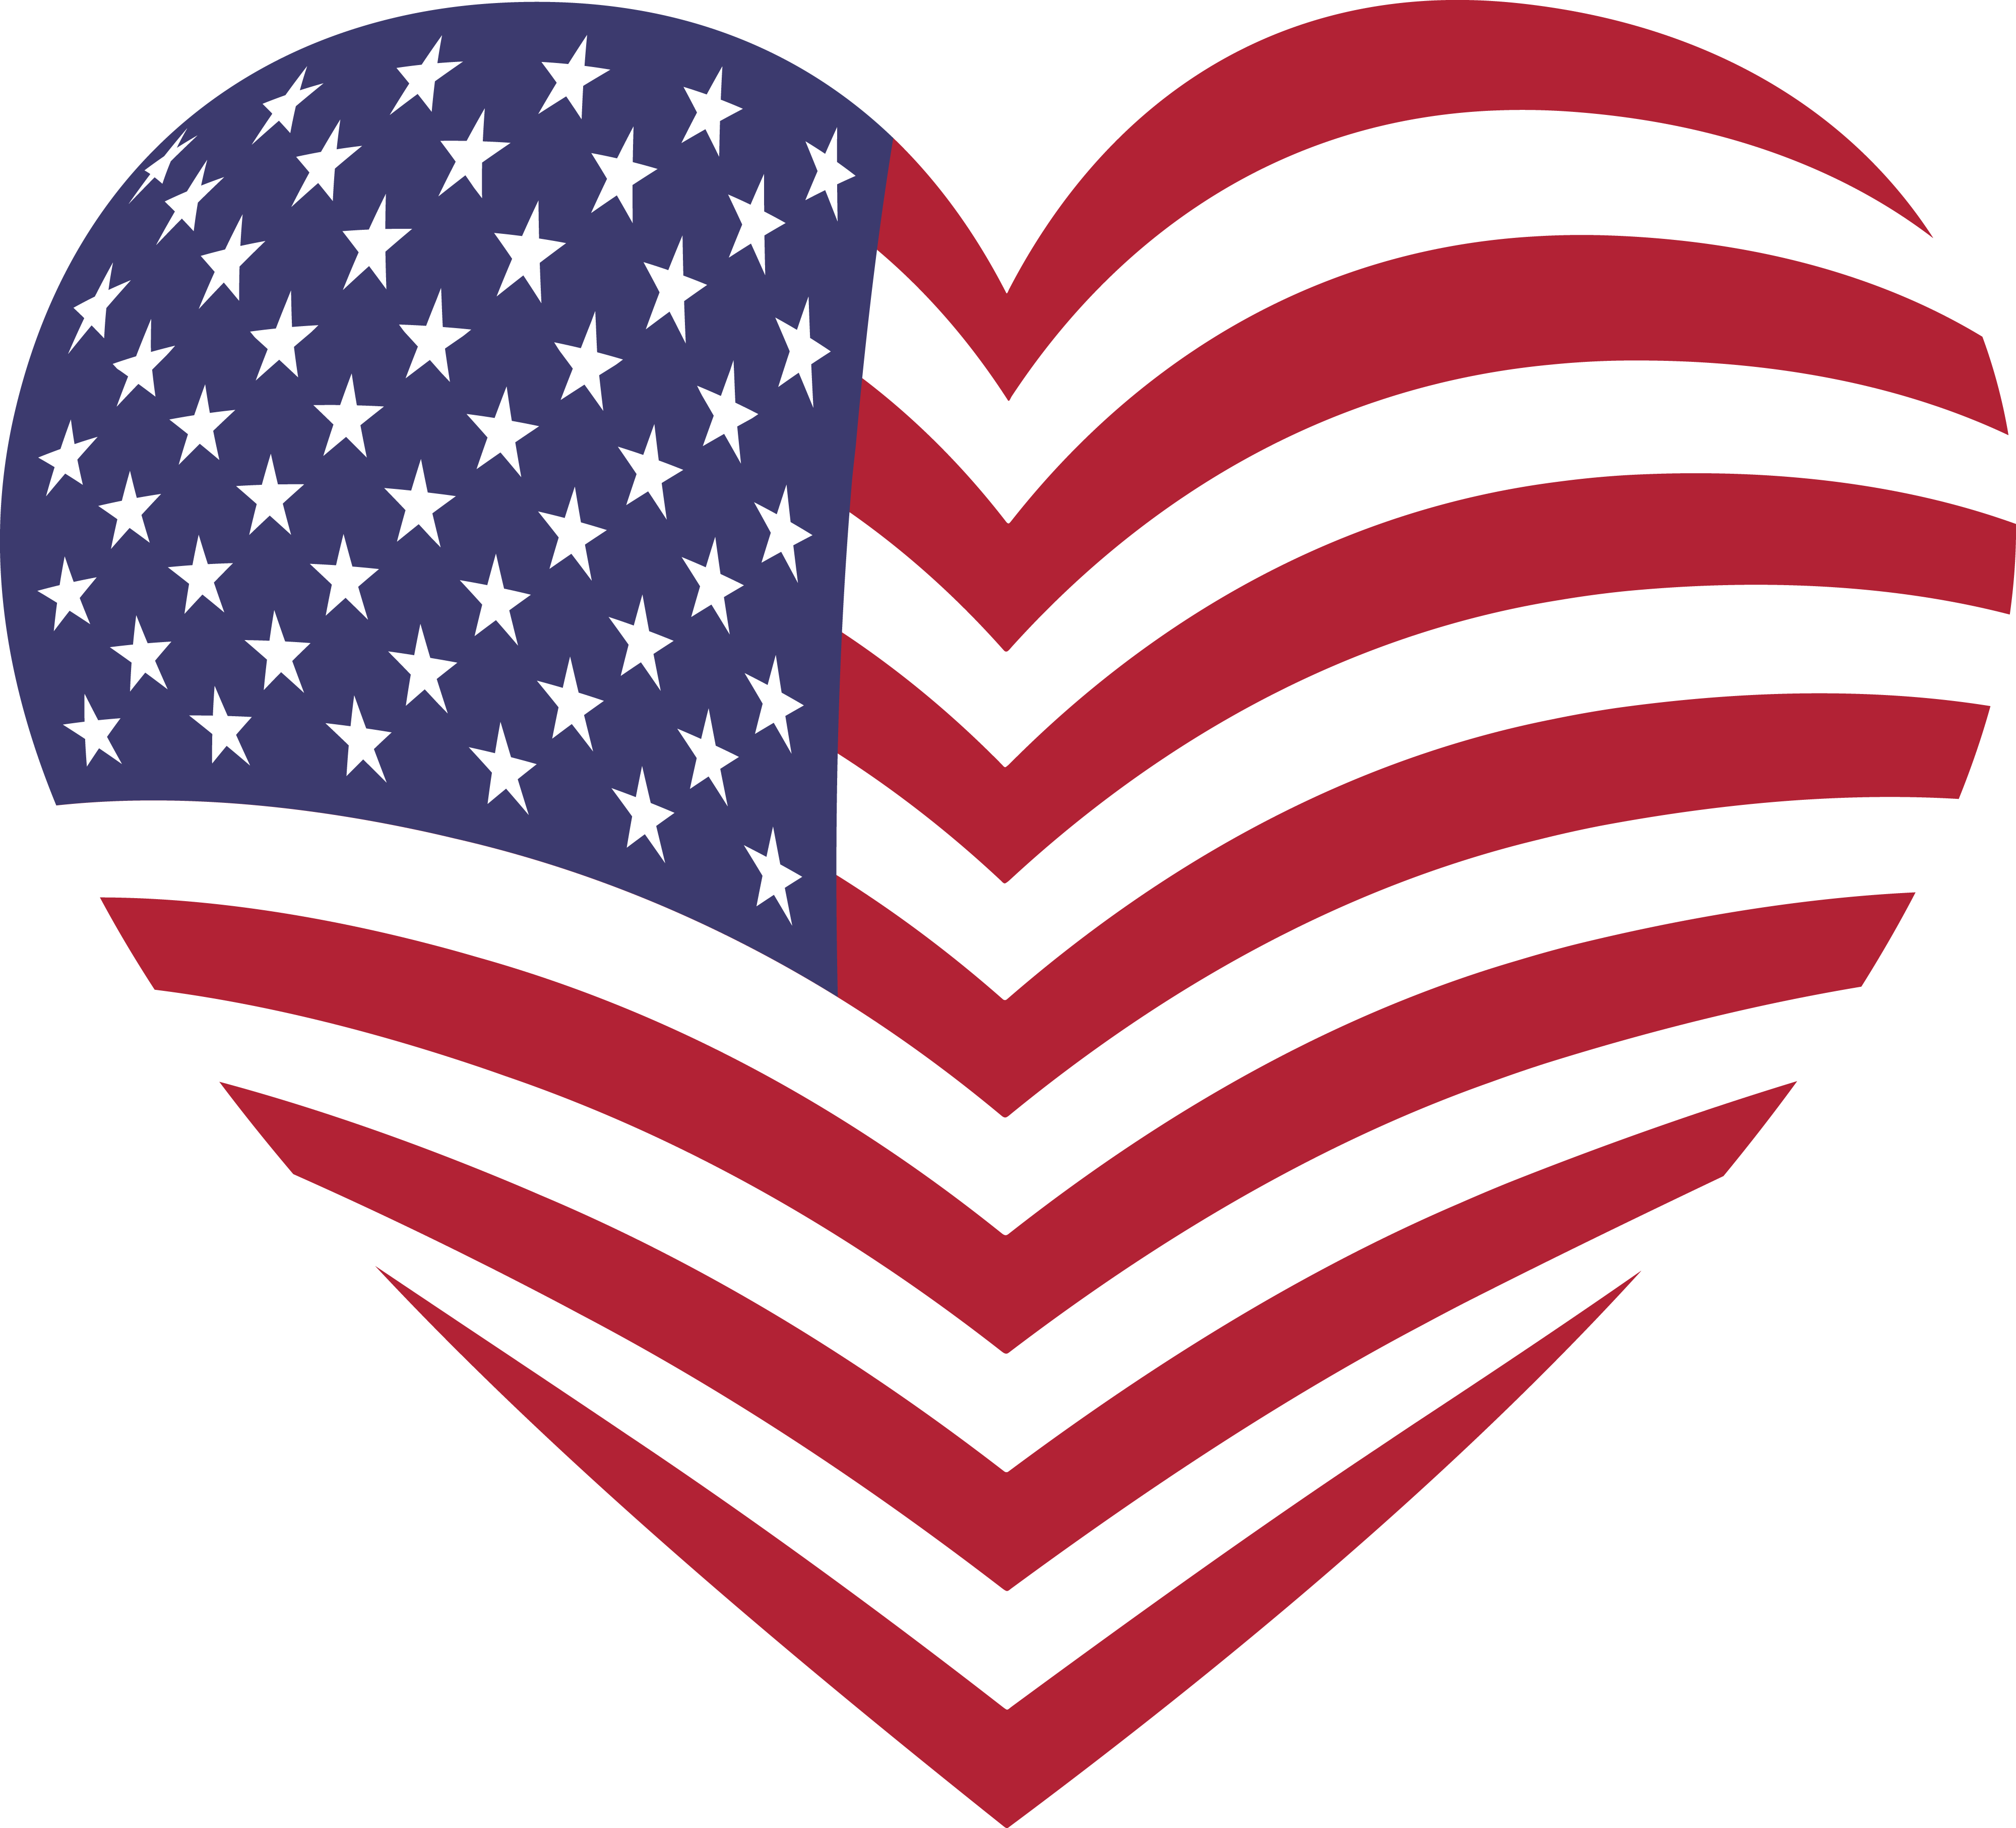 Usa flag heart. Clipart american crafts to